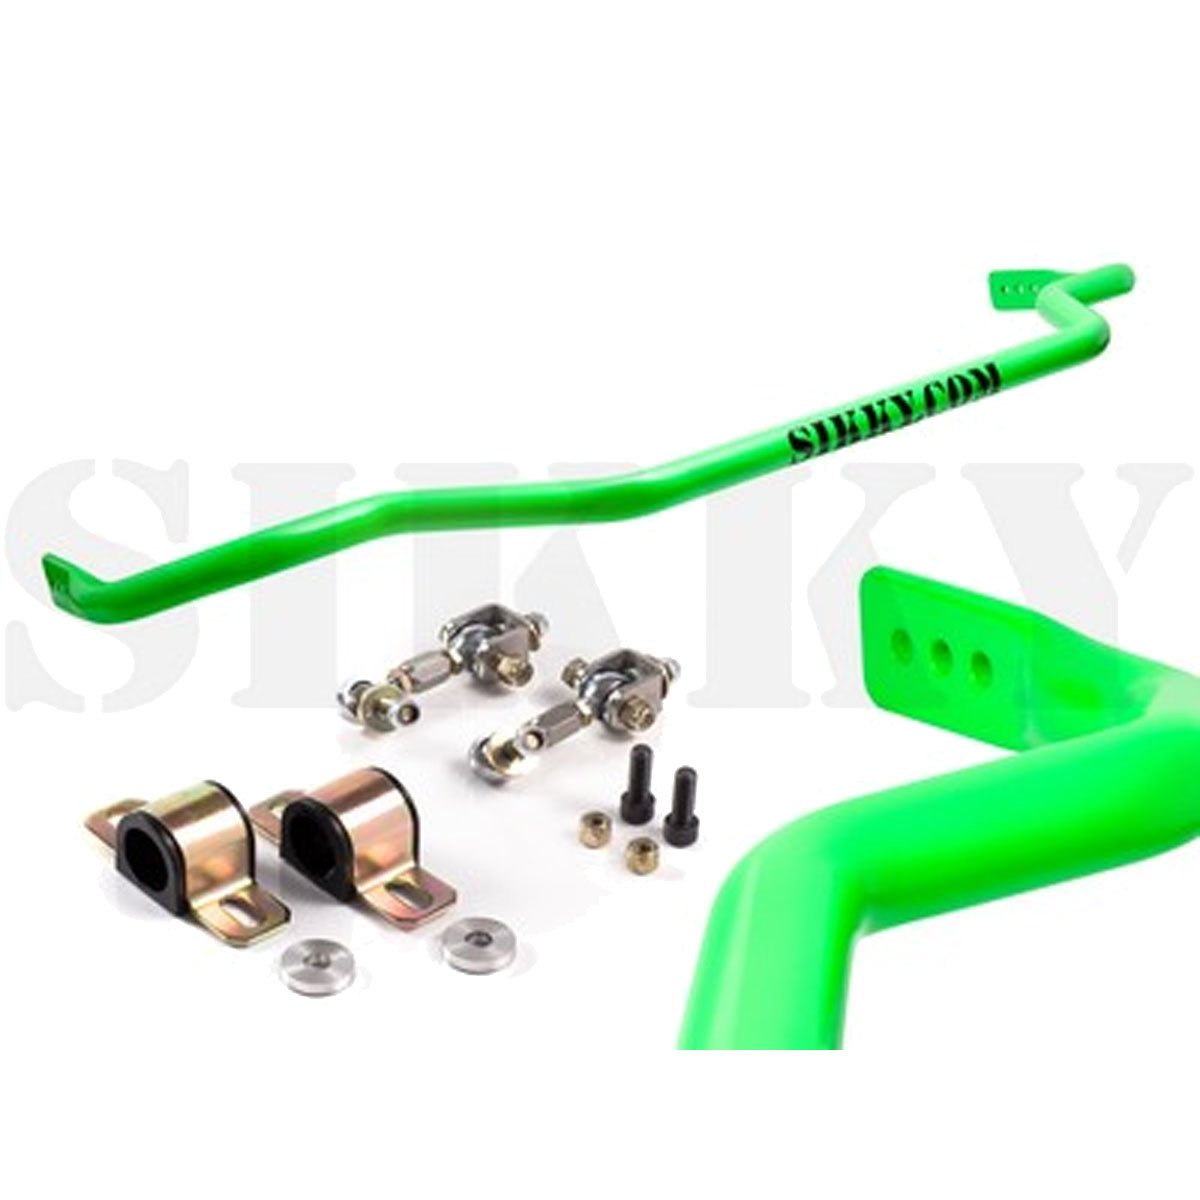 Sikky LSx RB 1JZ 2jZ Swap Front Sway Bar for Nissan S14